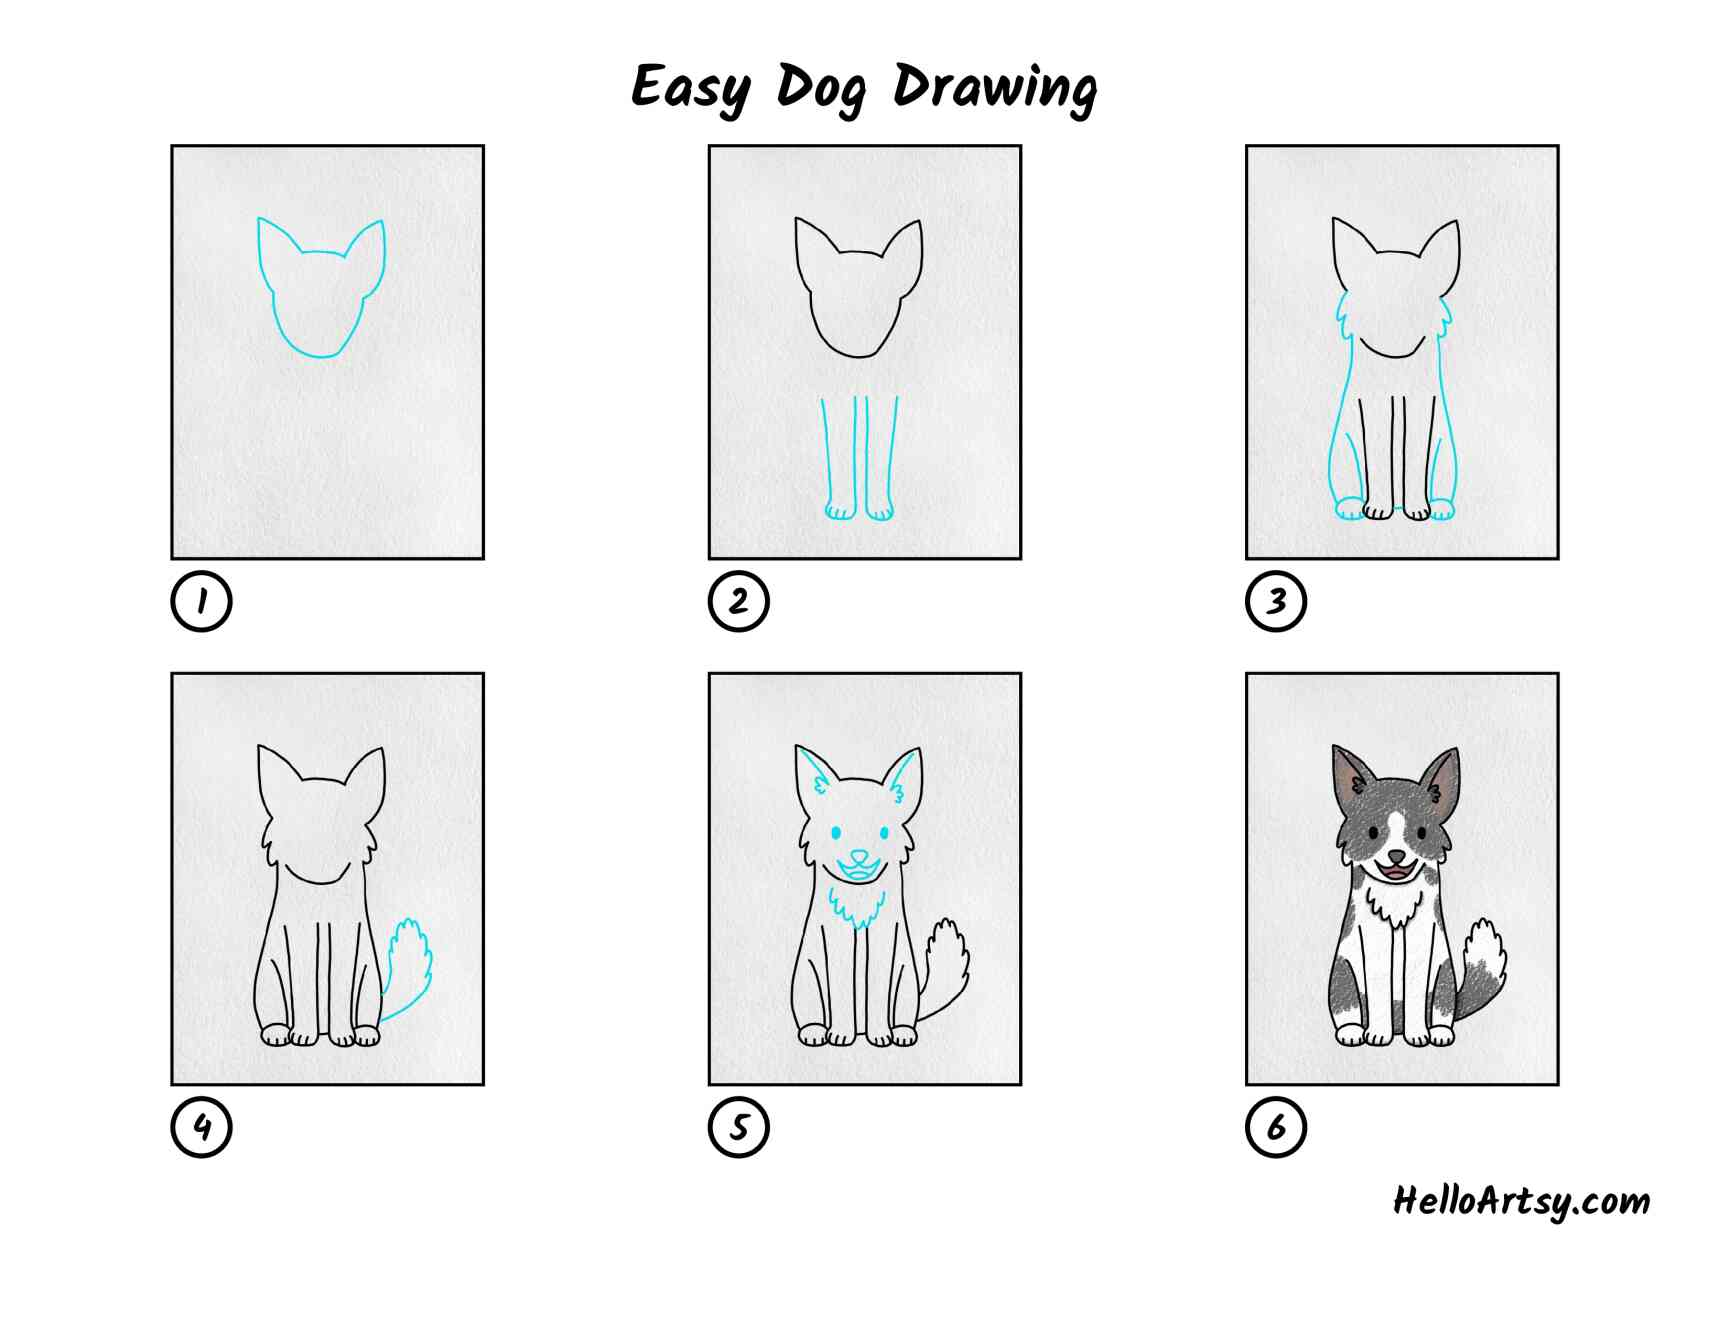 Easy Dog To Draw: All Steps